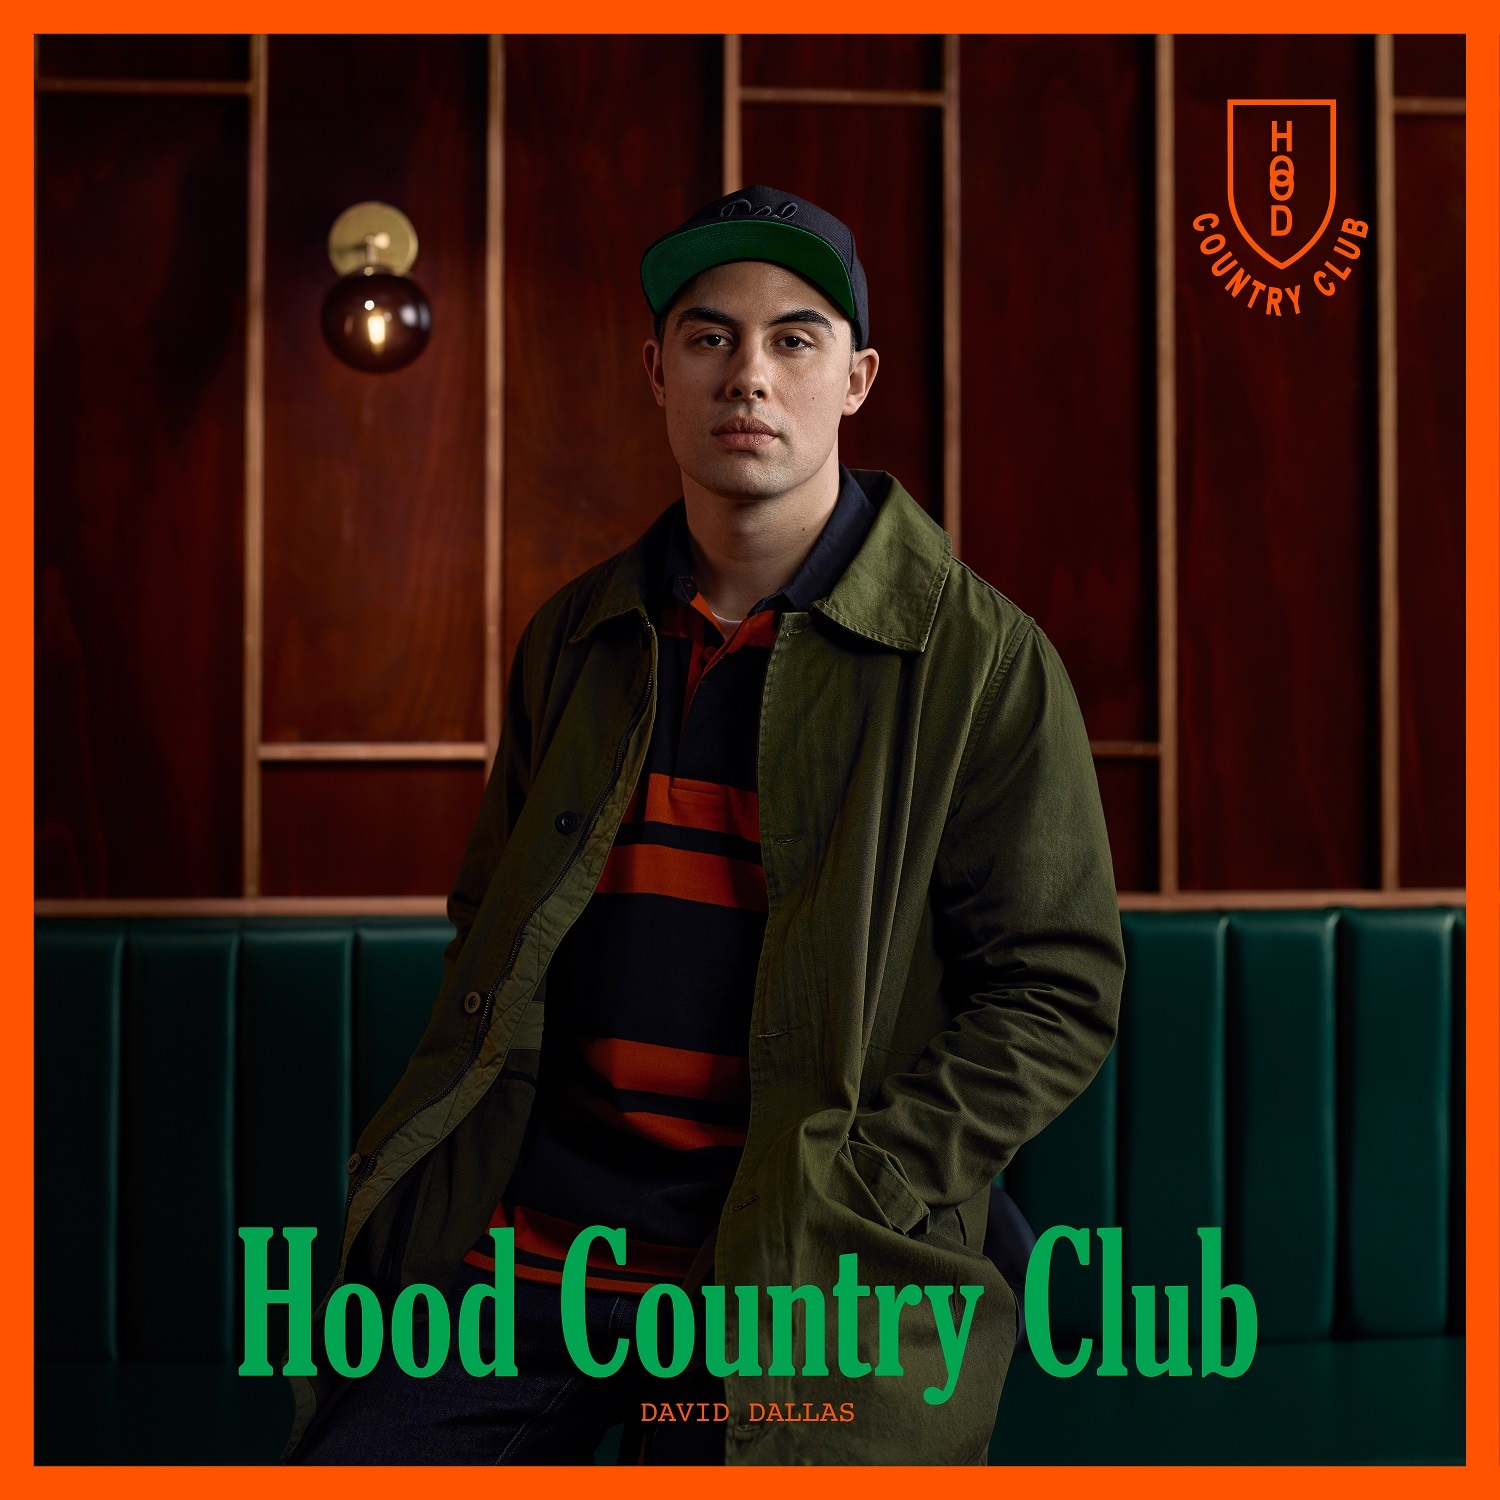 Hood Country Club by David Dallas image